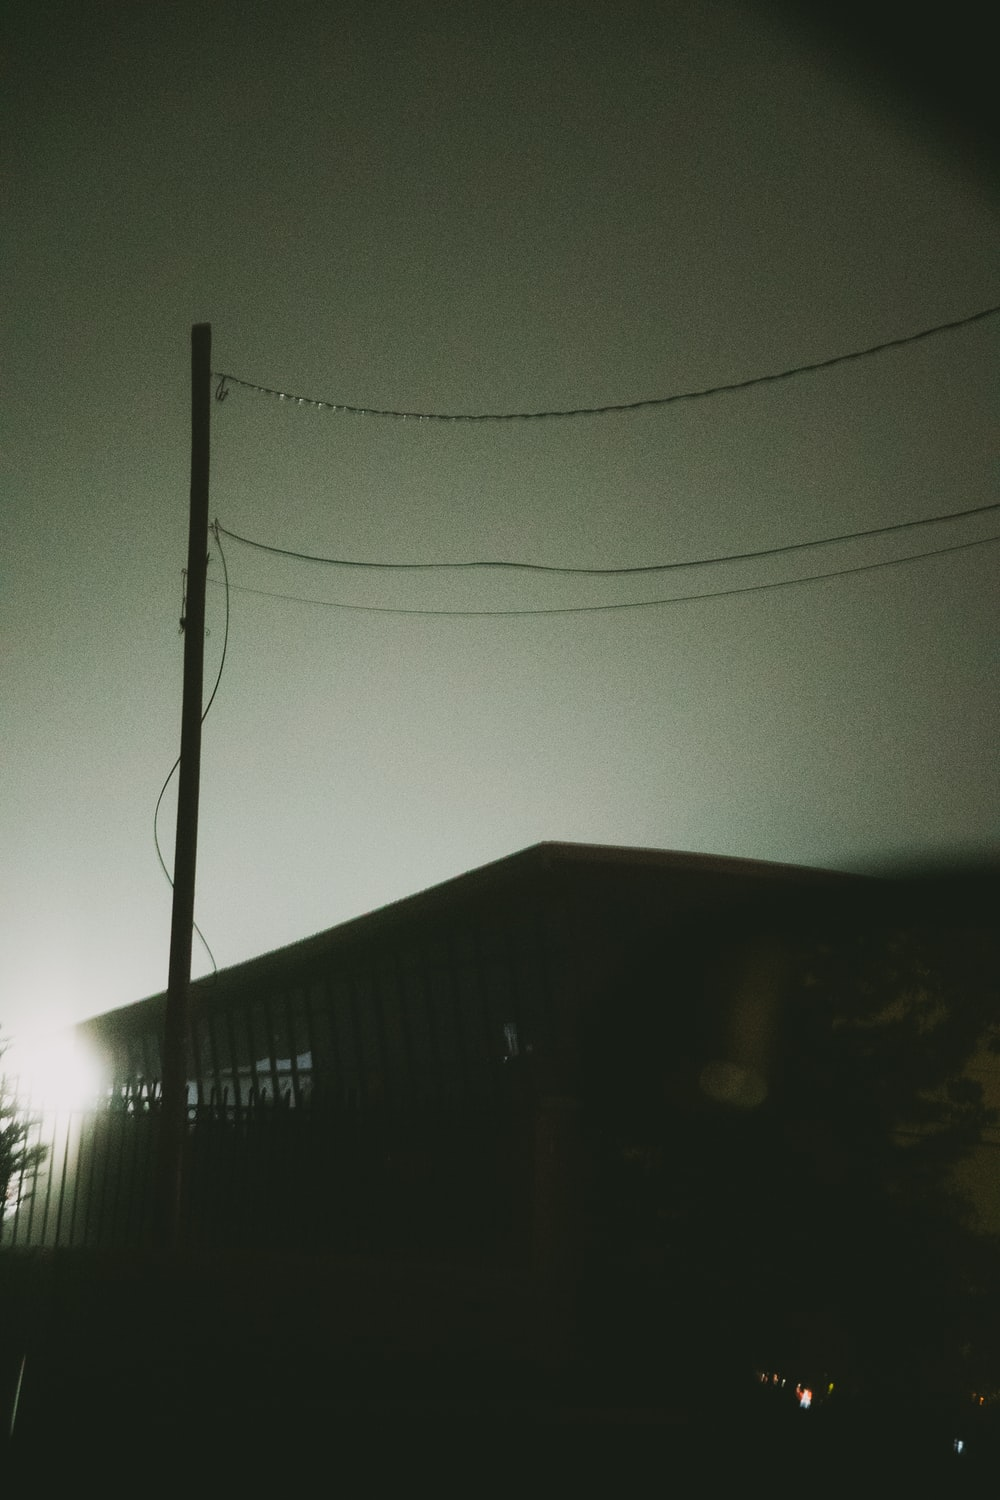 black electric post near house during night time